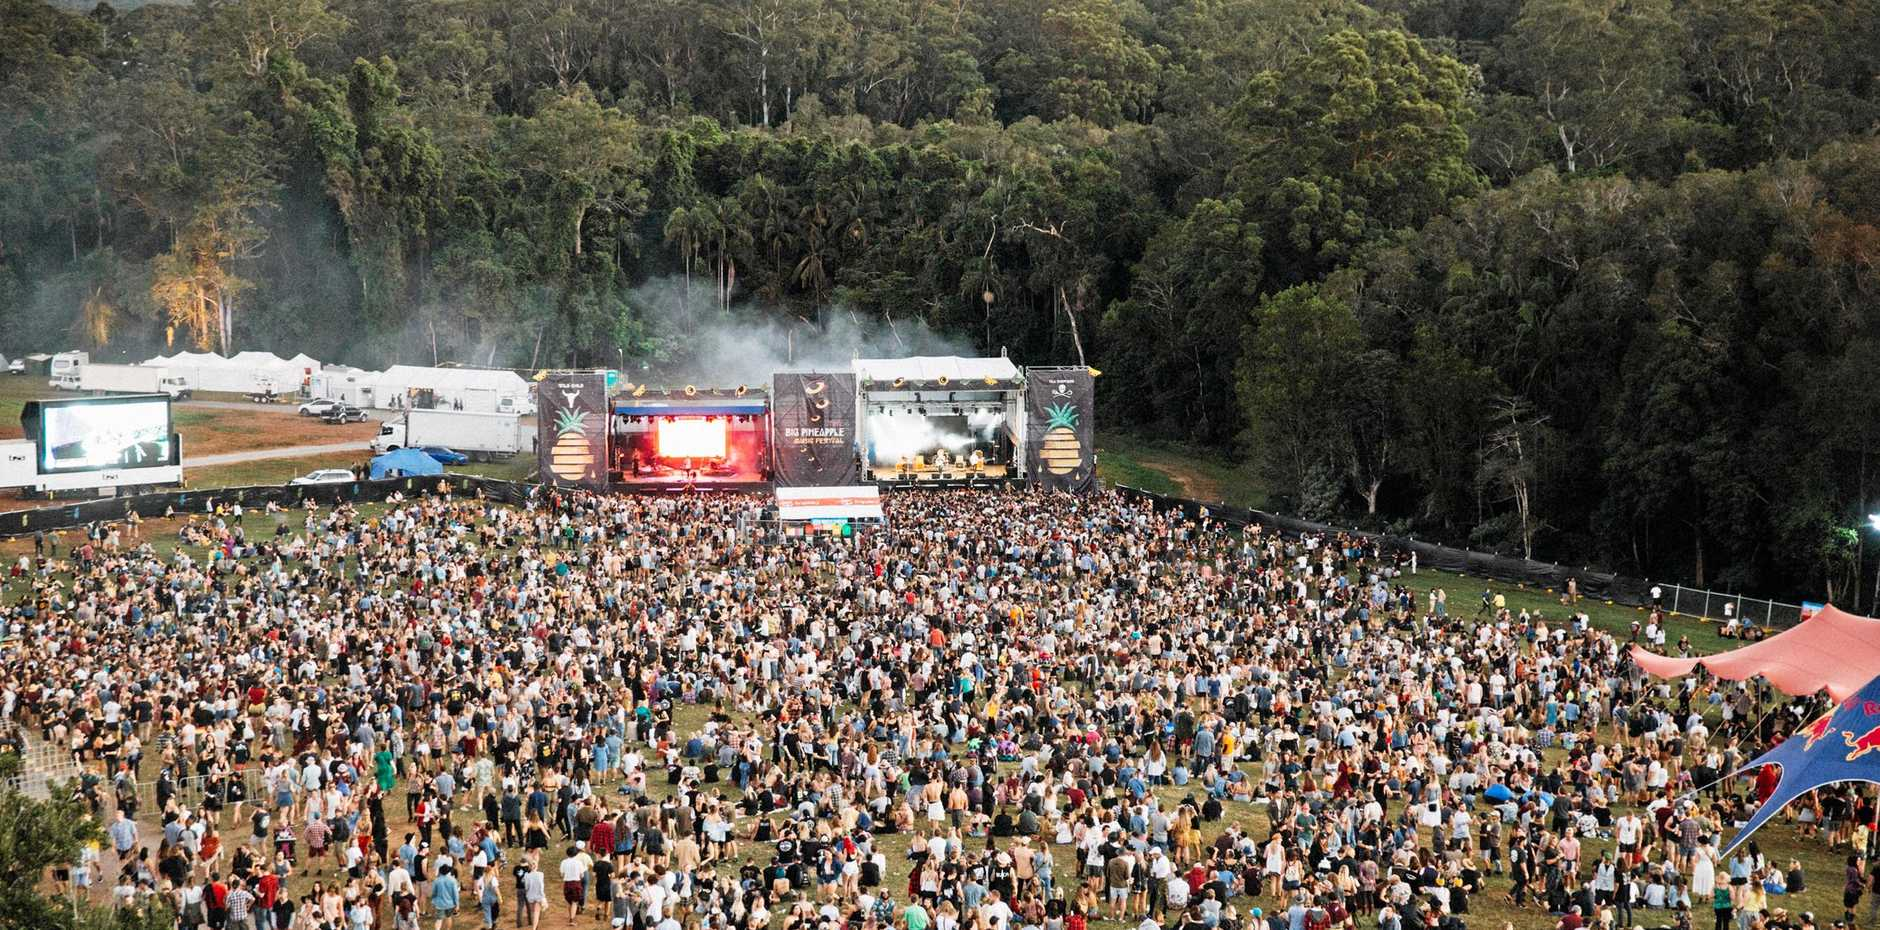 14,000 punters are expected to attend this year's Big Pineapple Music Festival, the biggest year yet.